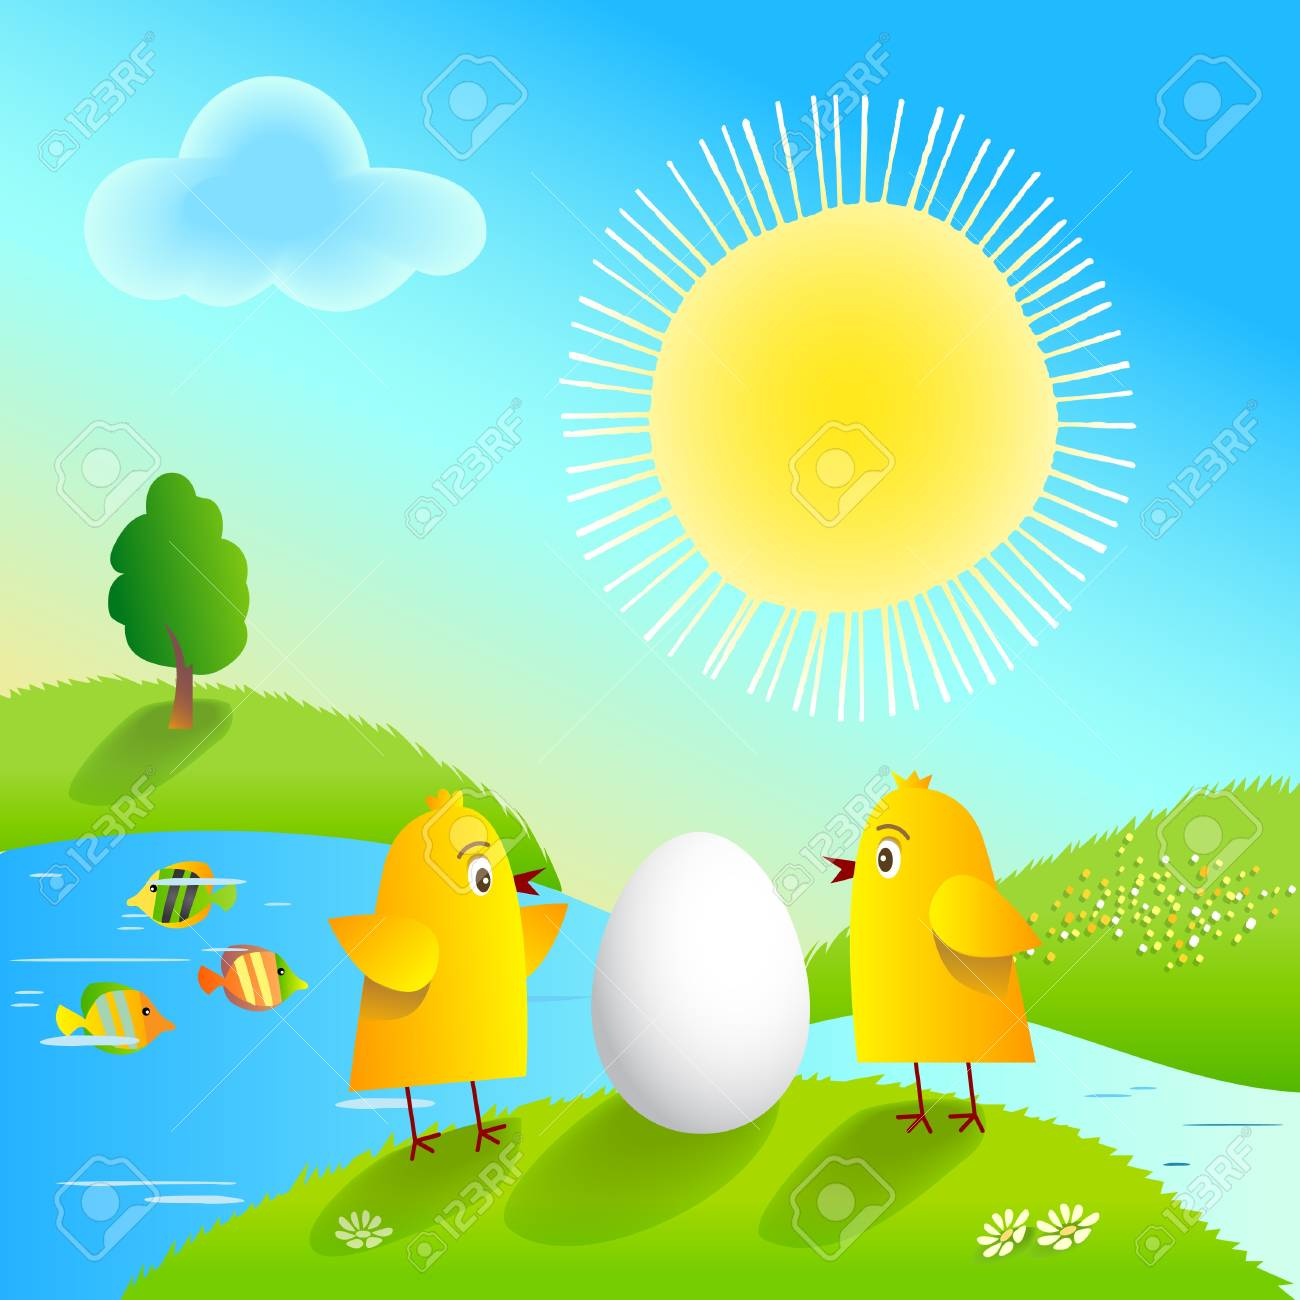 Happy Easter with funny chickens and egg. Stock Vector - 9167760